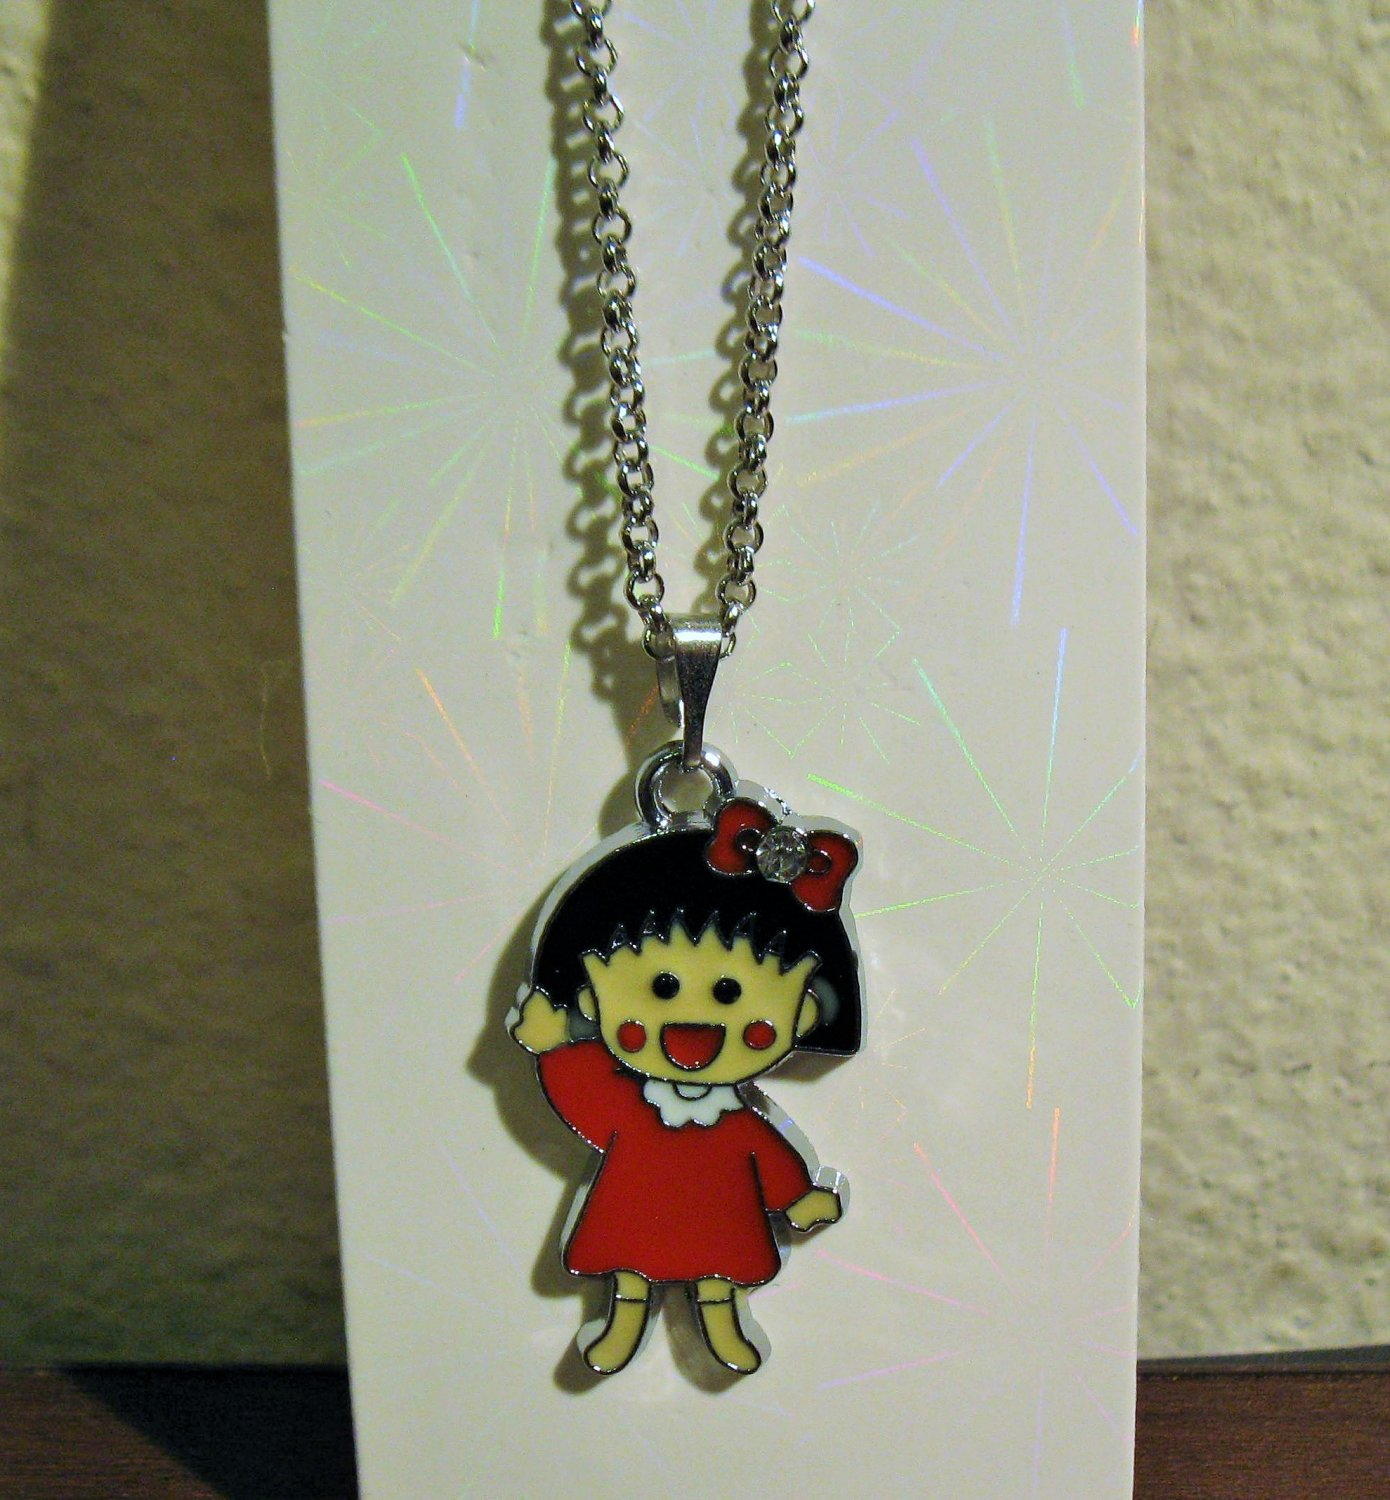 Adorable Red Dress Girl Silver Necklace 16 in New! #D1024